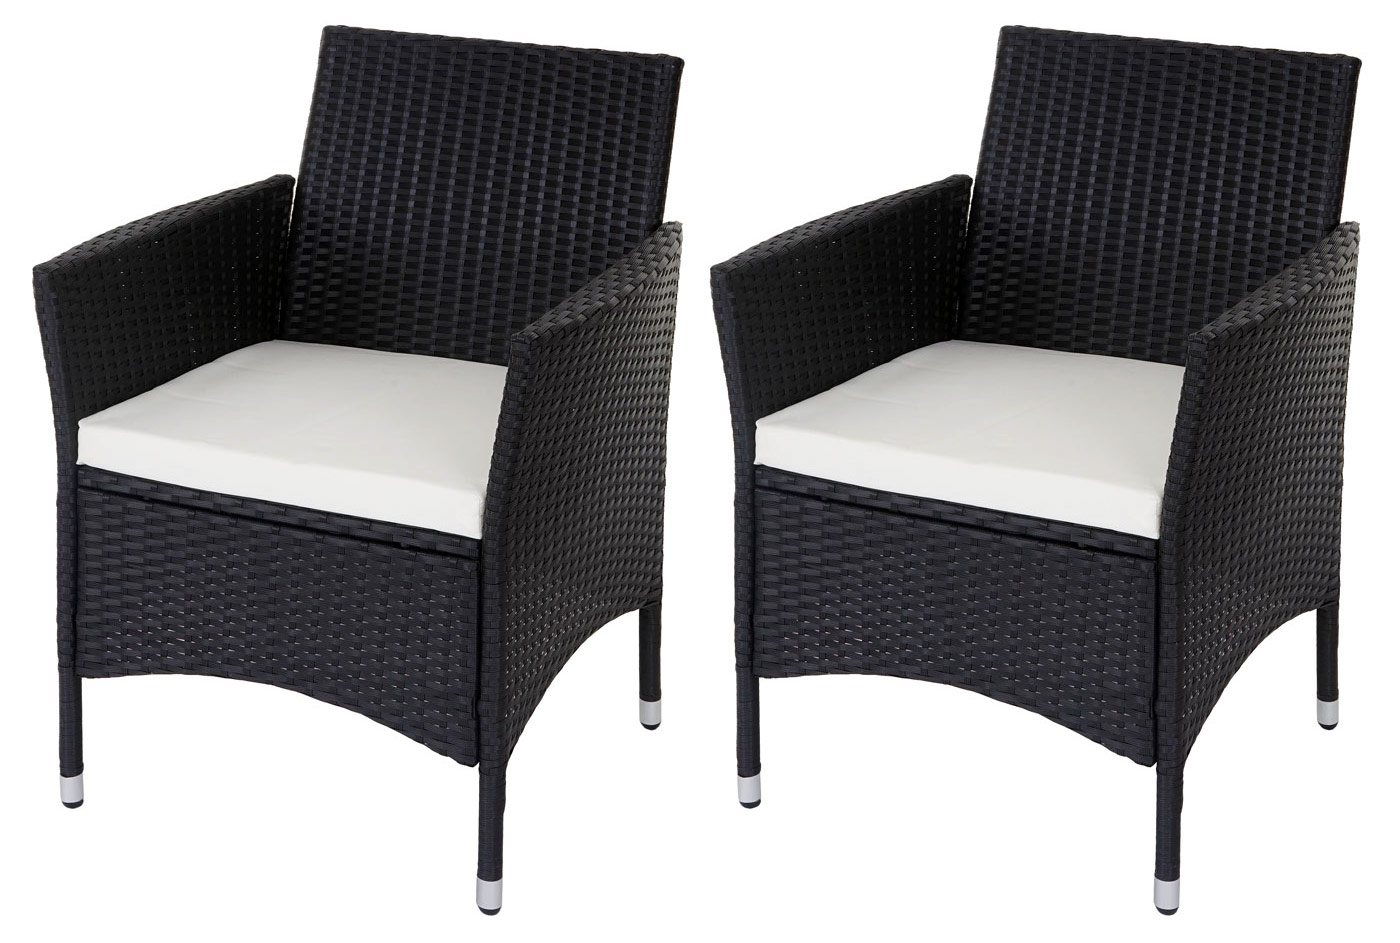 poly rattan garten garnitur modica 2x sessel sitzkissen tisch mit glasplatte ebay. Black Bedroom Furniture Sets. Home Design Ideas